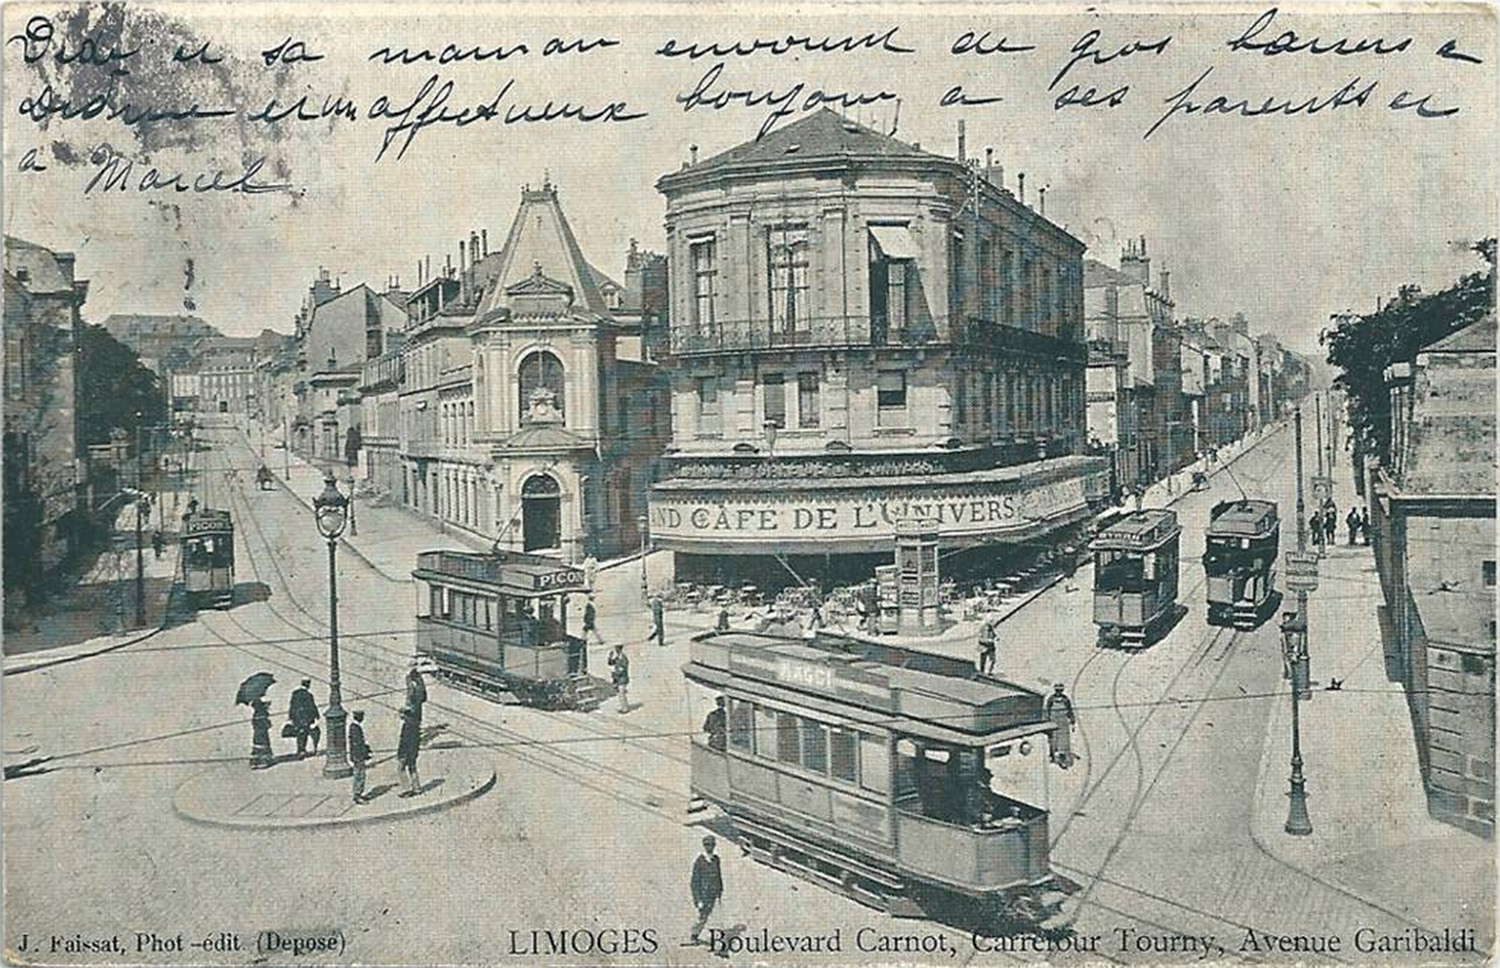 limoges carnot